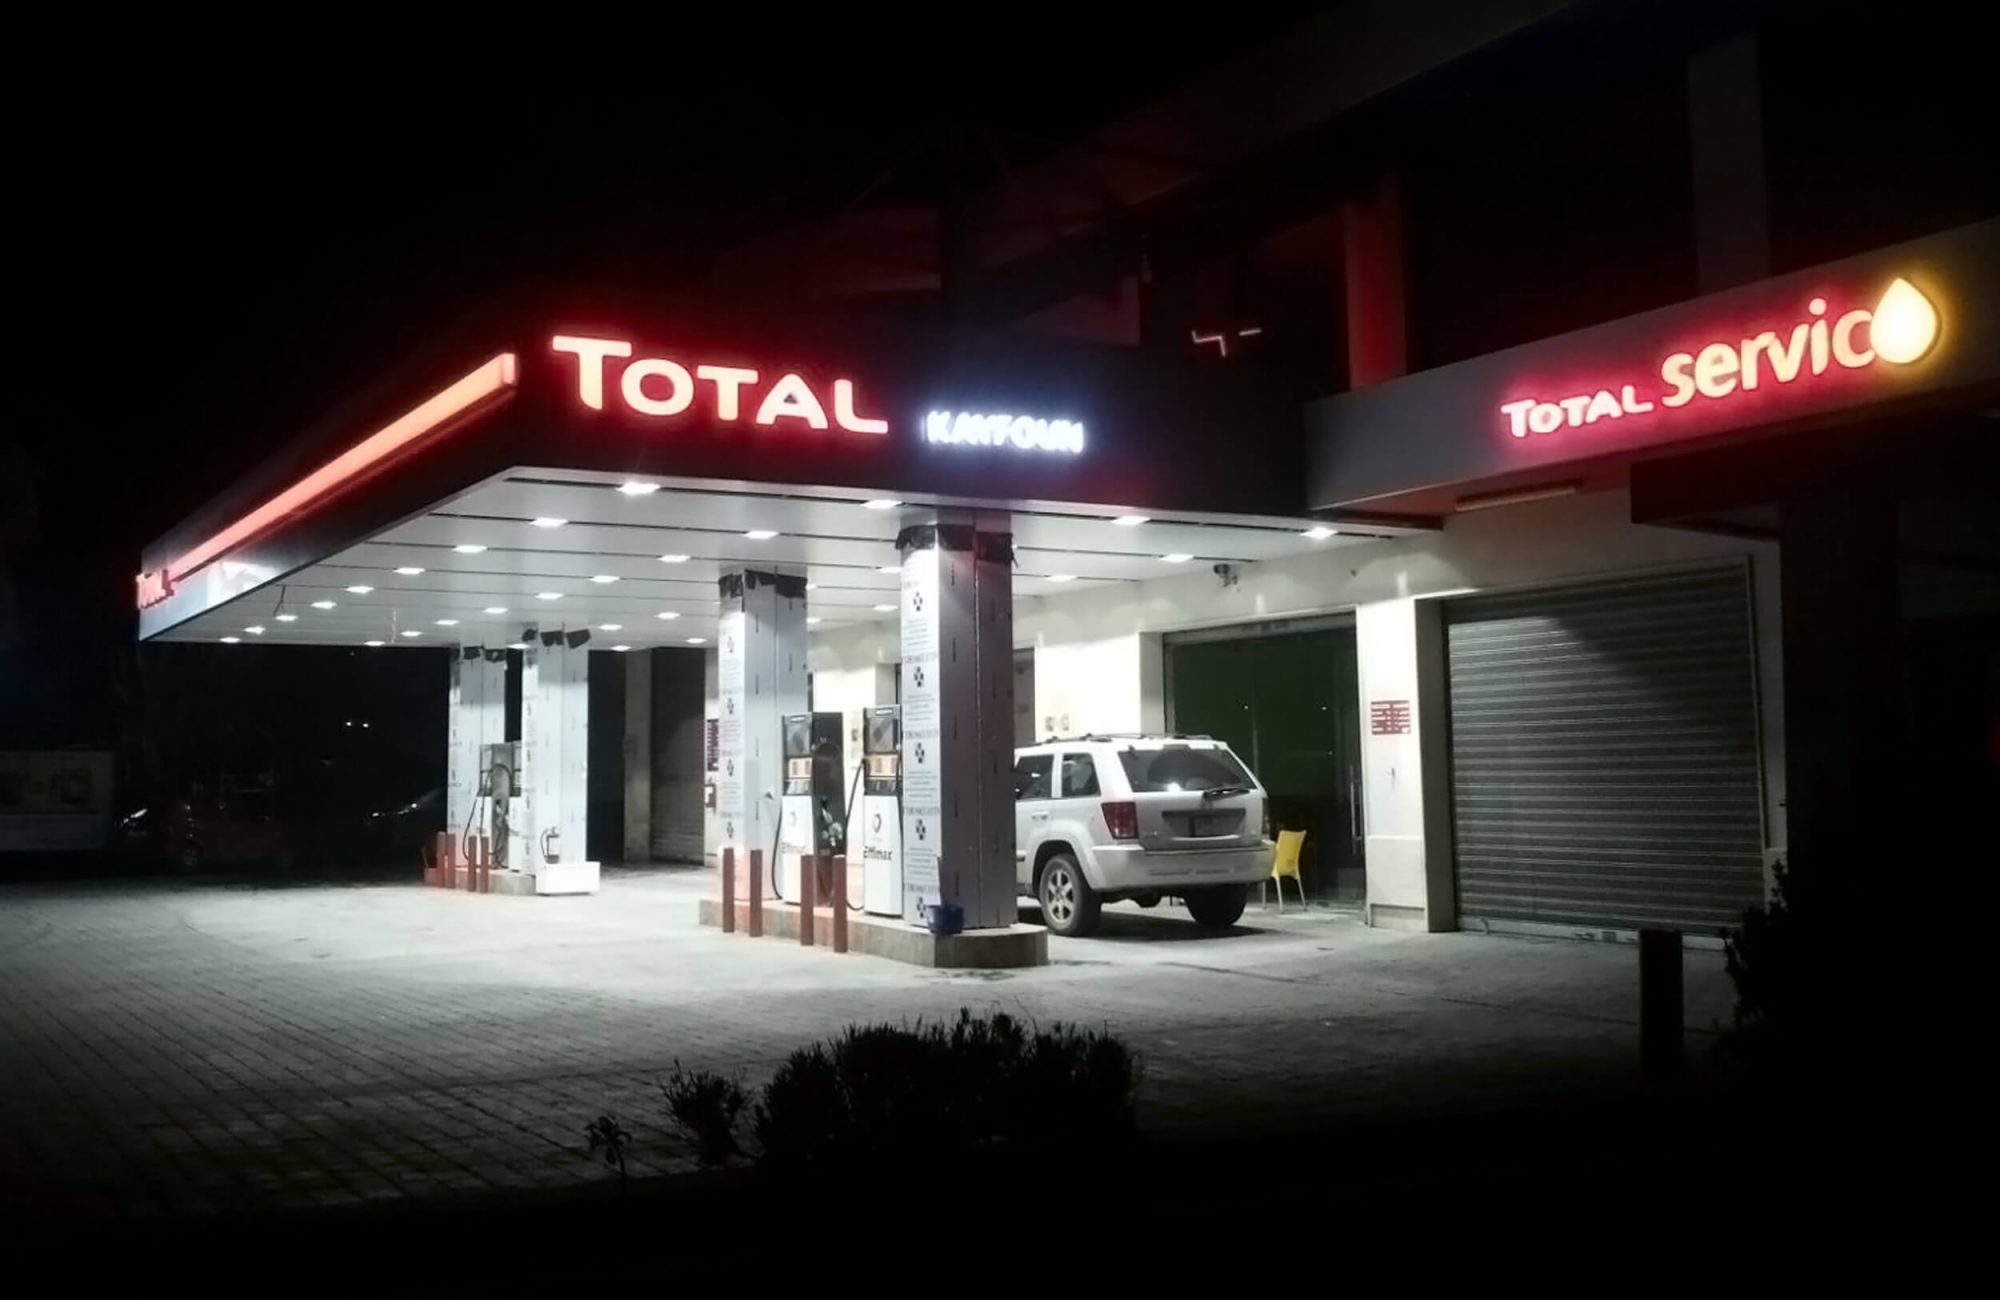 TOTAL-LIBAN S.A.L.